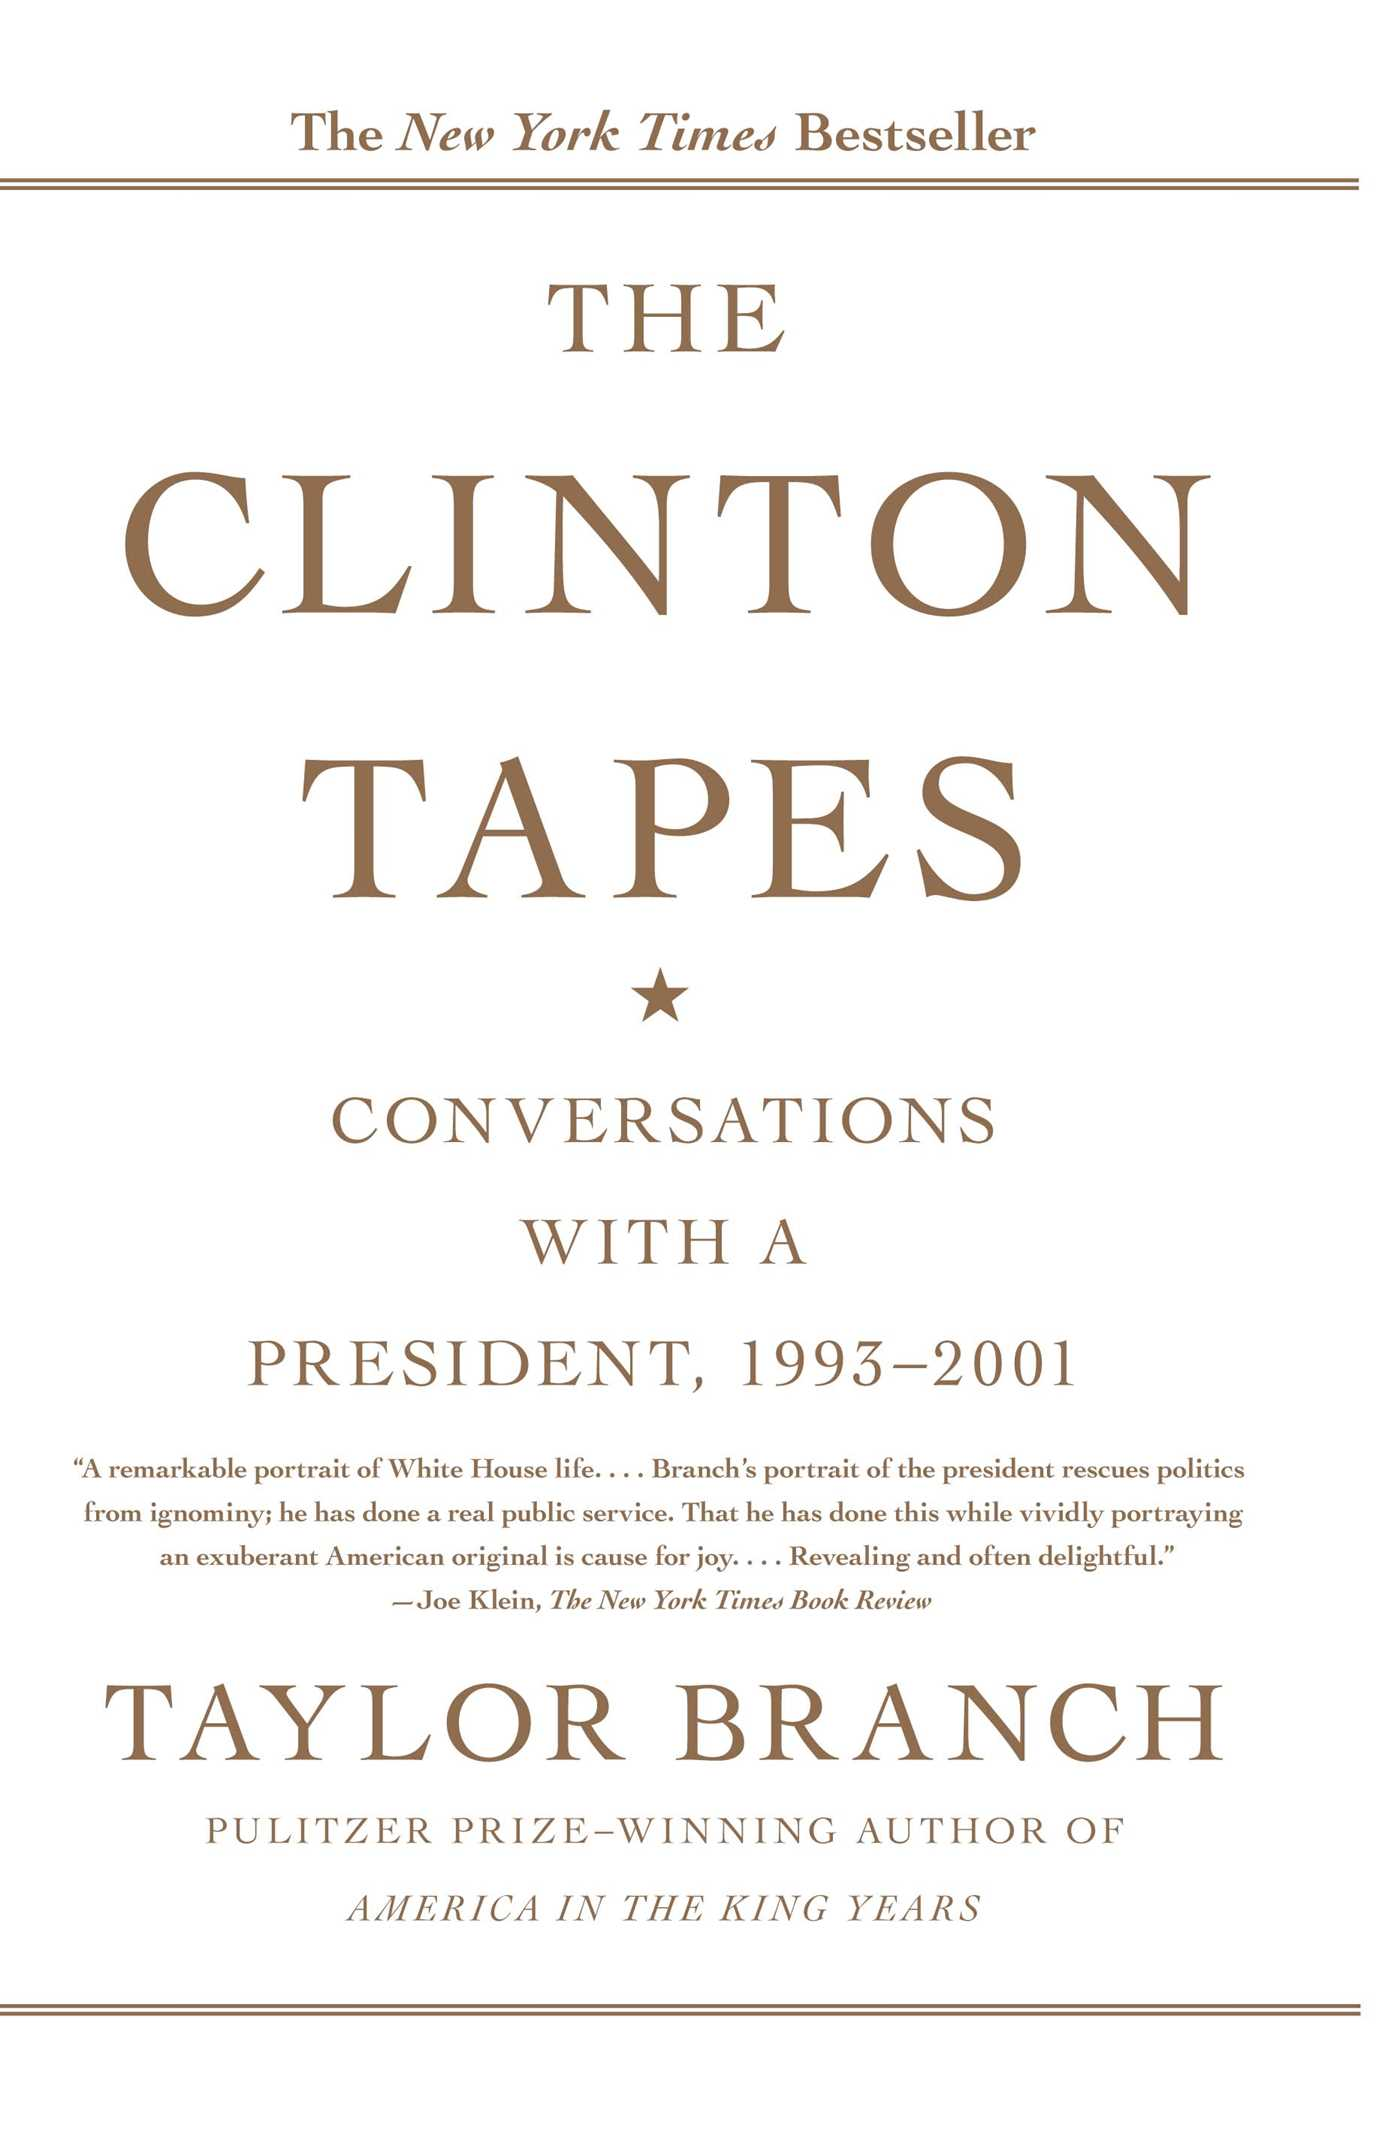 Clinton-tapes-9781416594345_hr